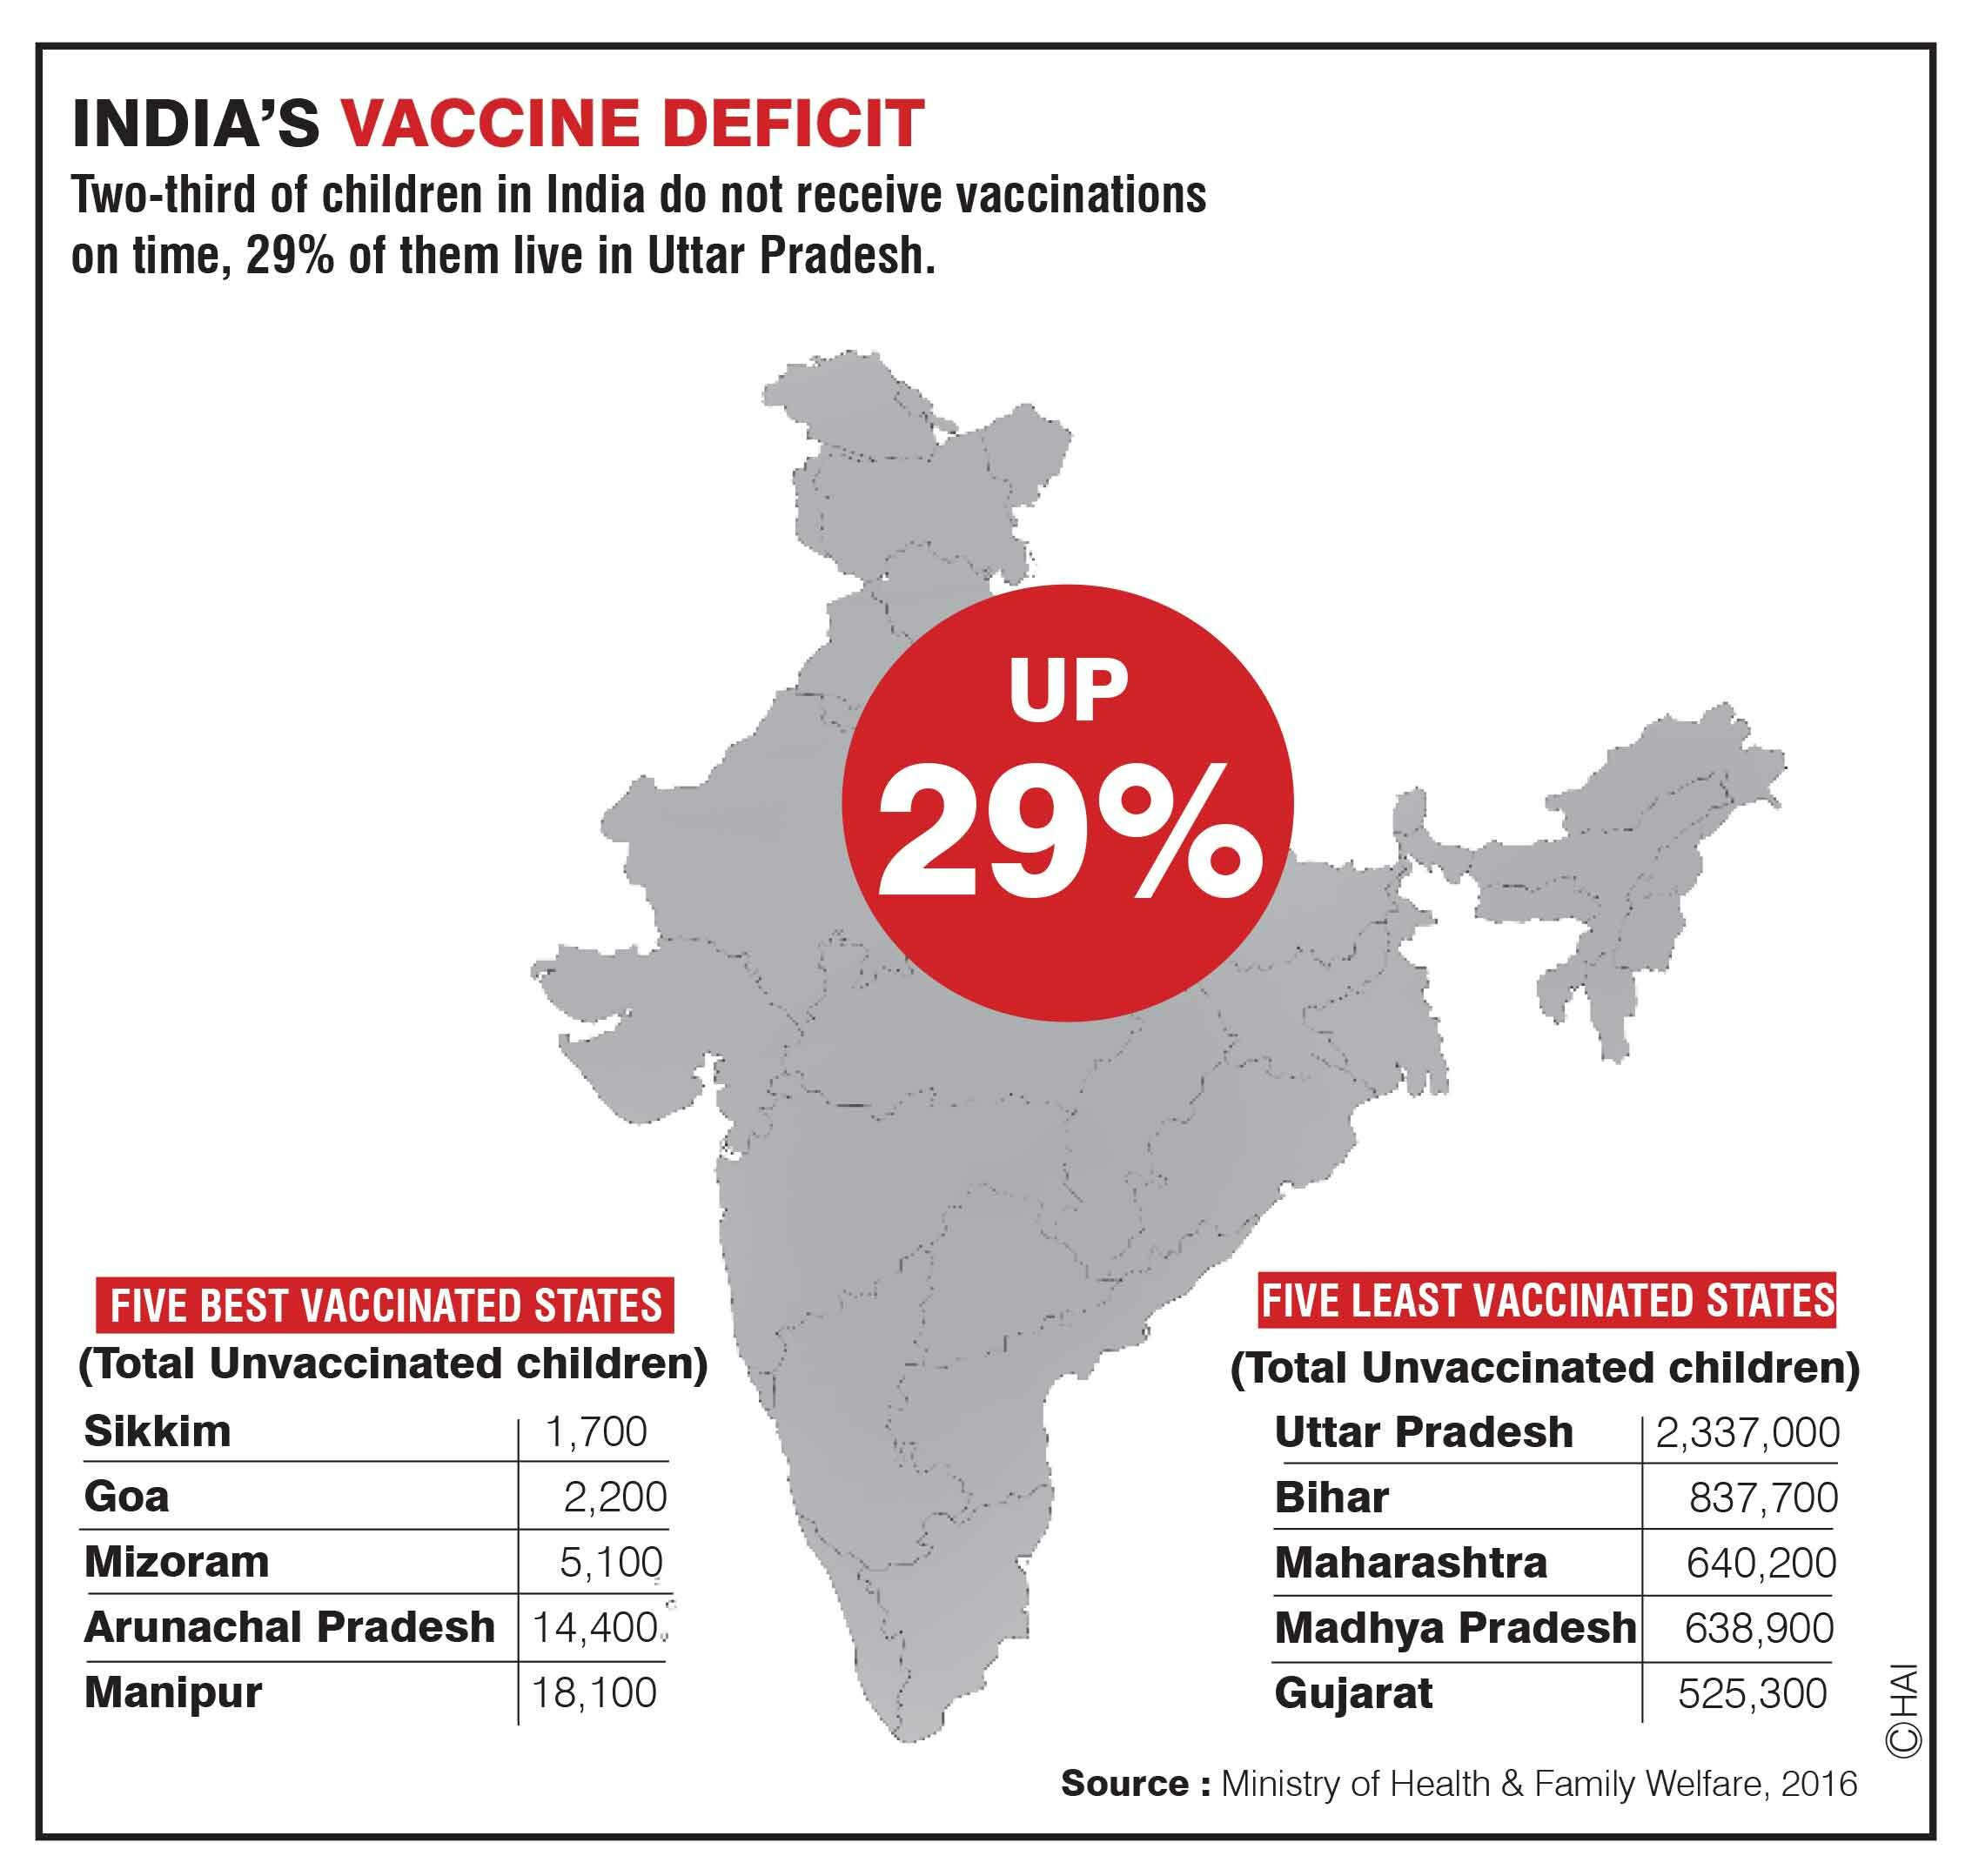 20 lakh children not vaccinated in UP